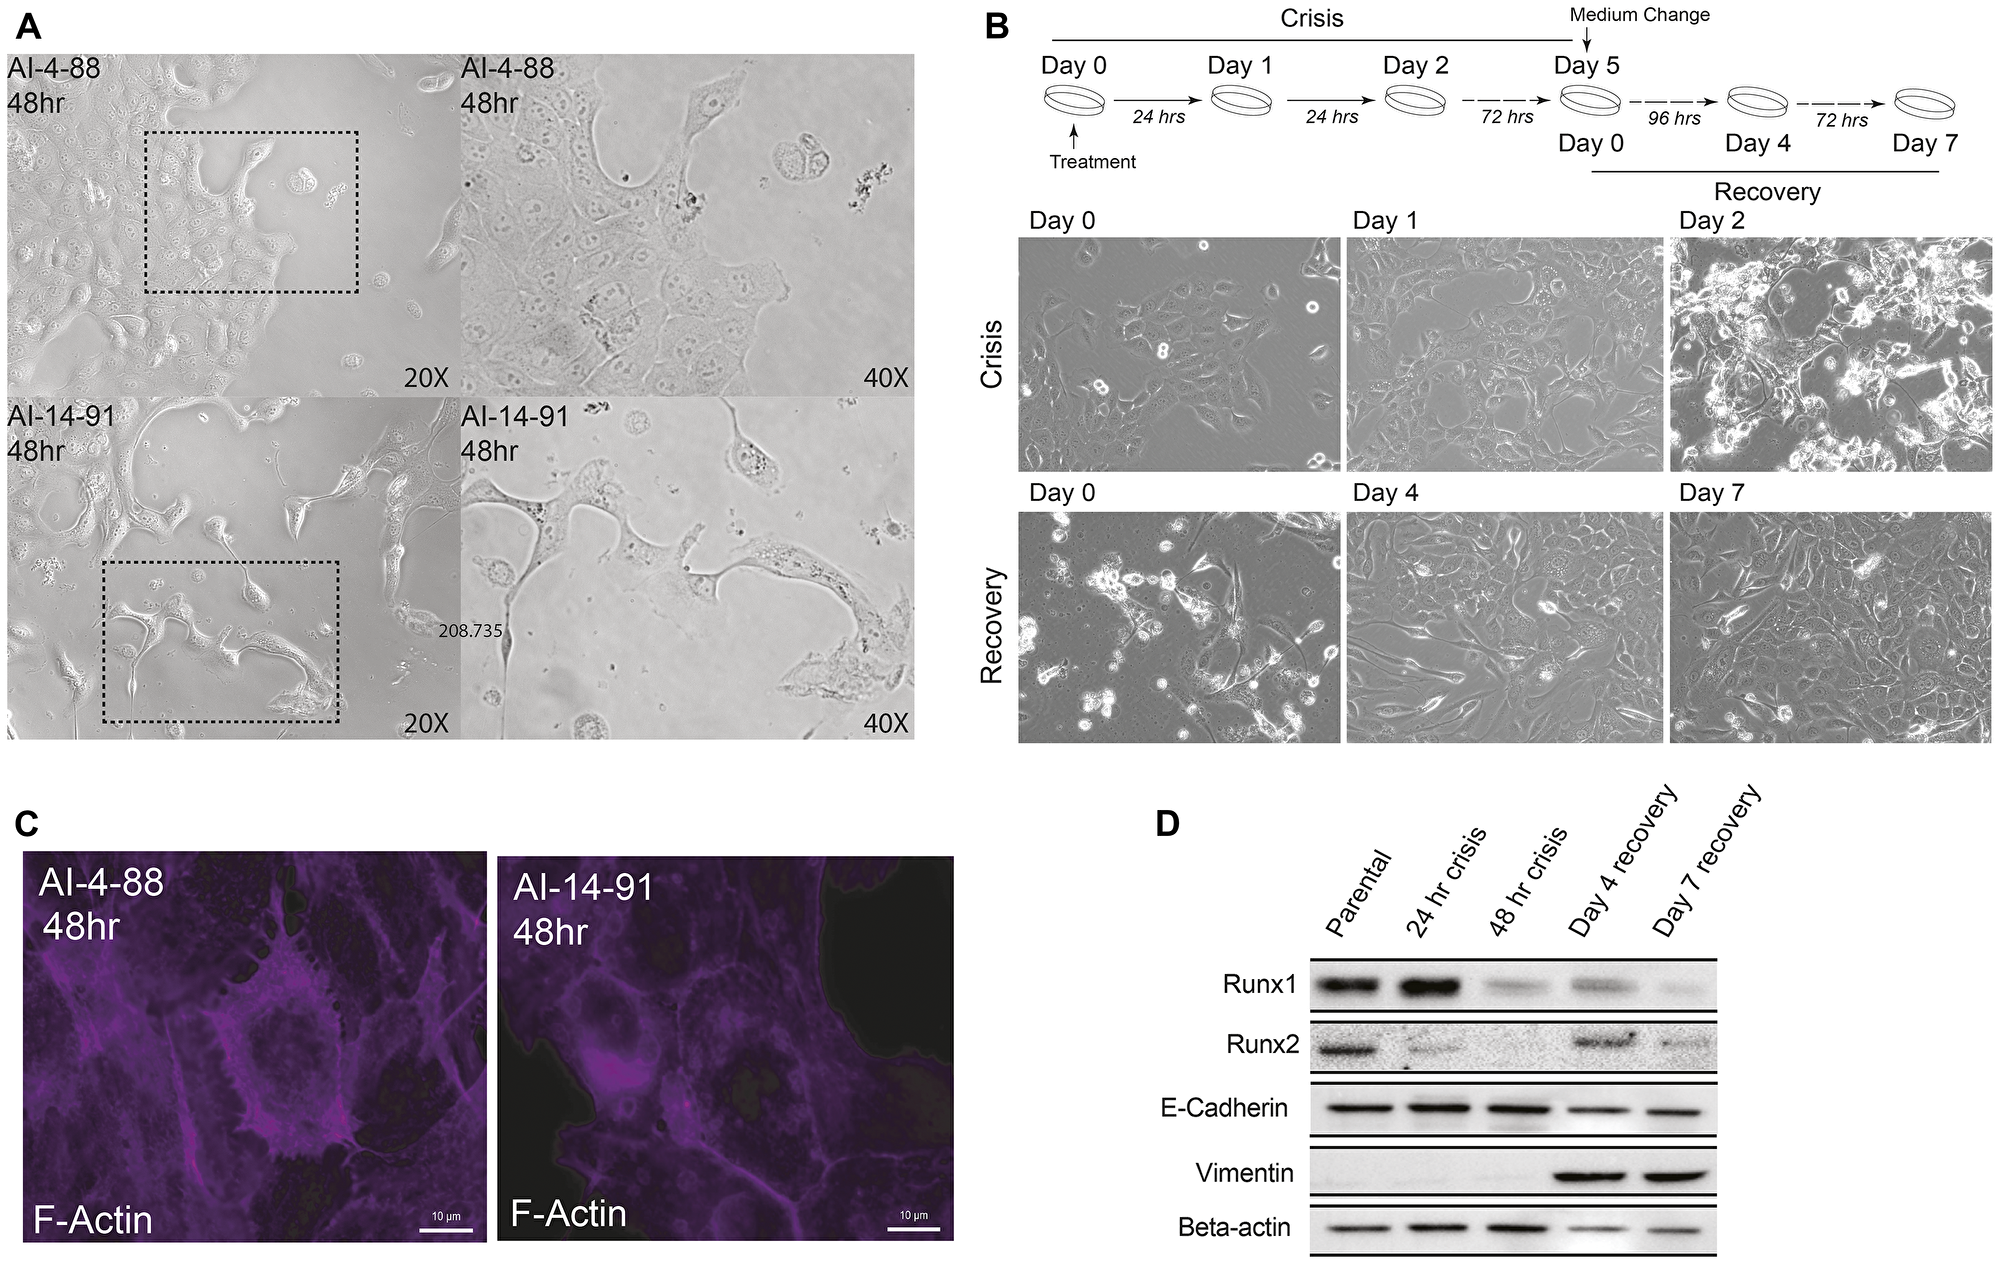 Disrupting transcriptional activity of the RUNX1-CBF Complex in MCF10A cells leads to a transformed cellular phenotype and EMT.